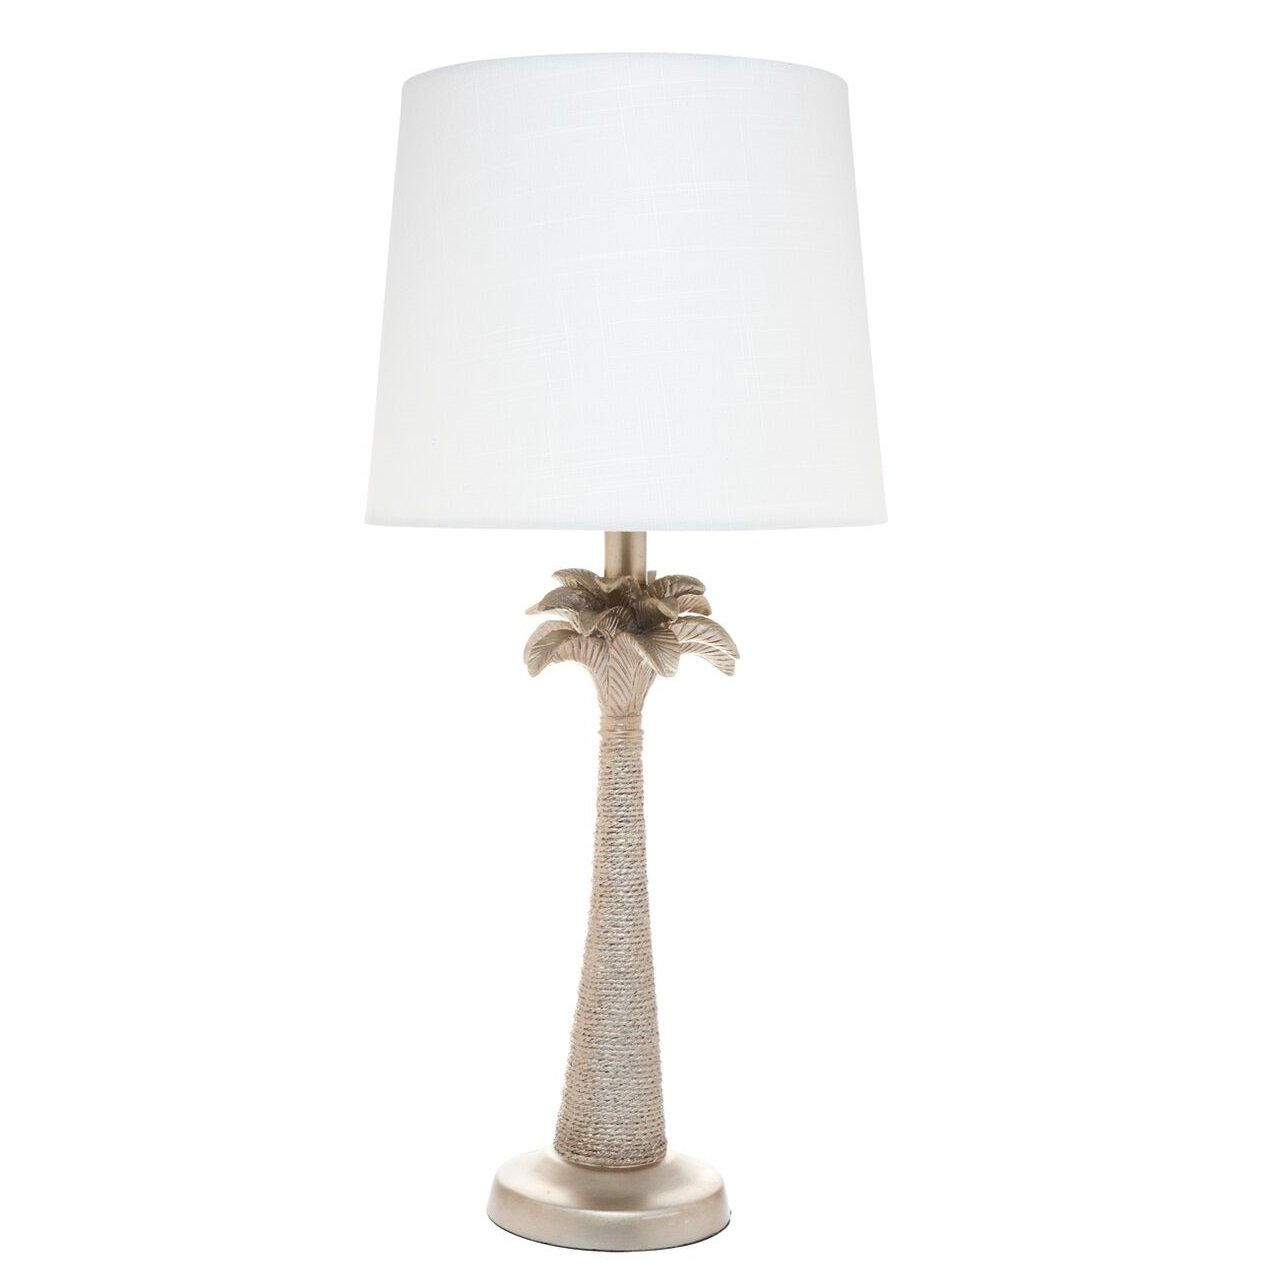 Beverly Palm Tree Table Lamp